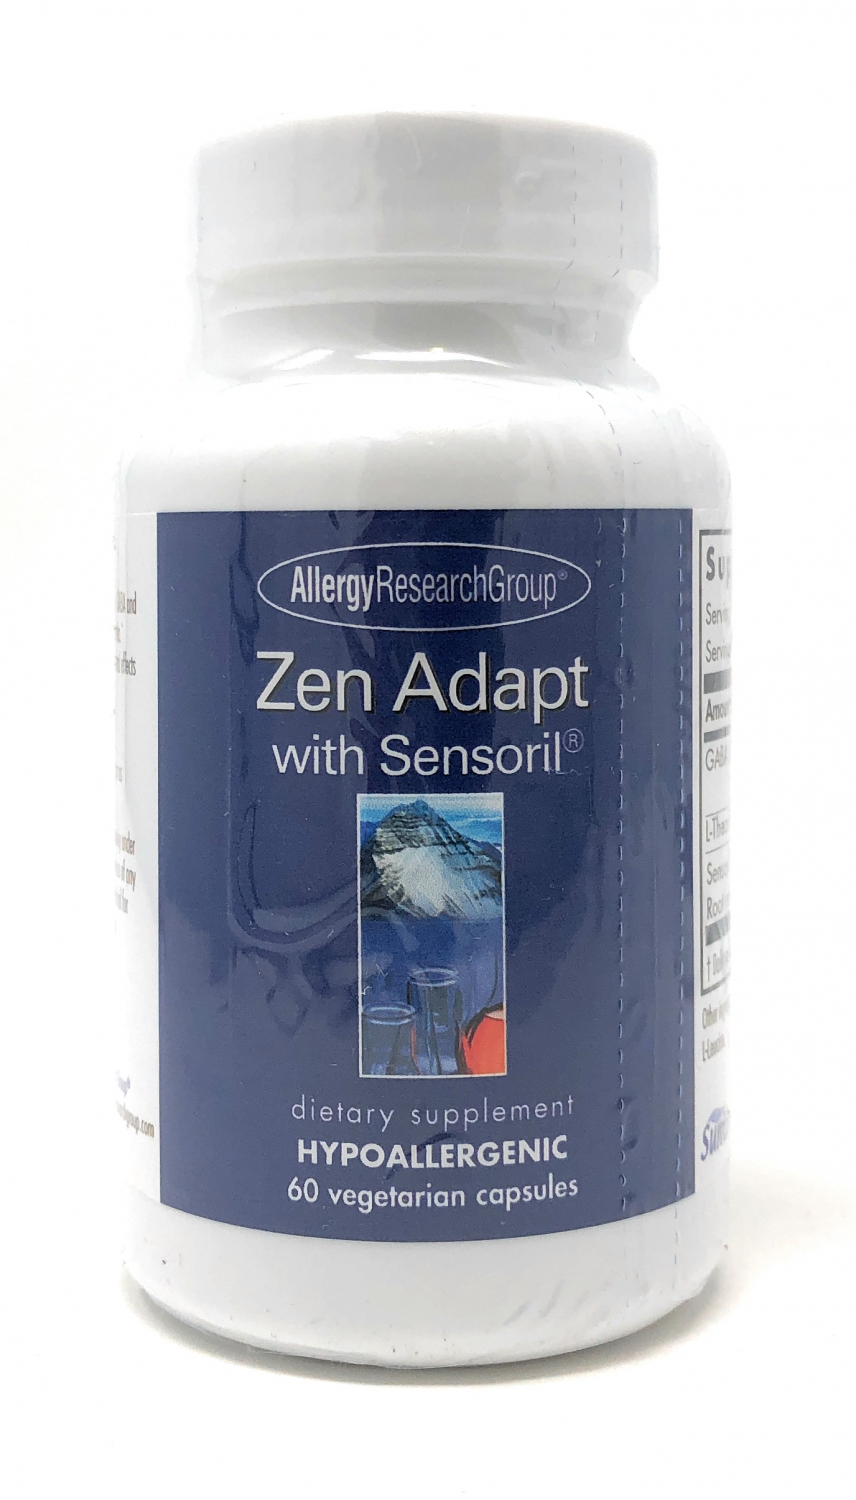 Allergy Research Group Zen Adapt 60 veg. Kapseln